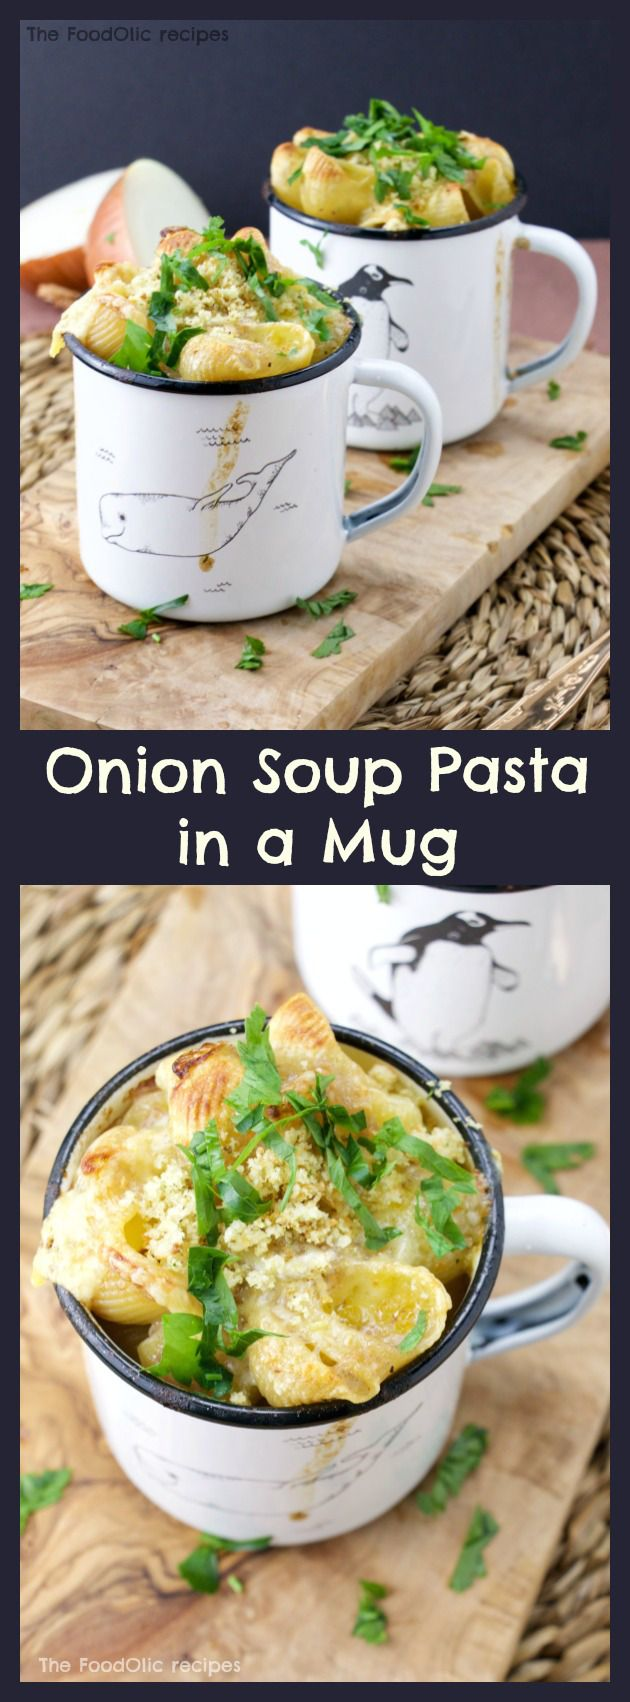 A shell pasta with an extra tasty onion soup (sauce) served in a mug topped with a light gratiné, fresh parsley and crunchy bread crumbs.#mugmeals #onionsoup #gratin